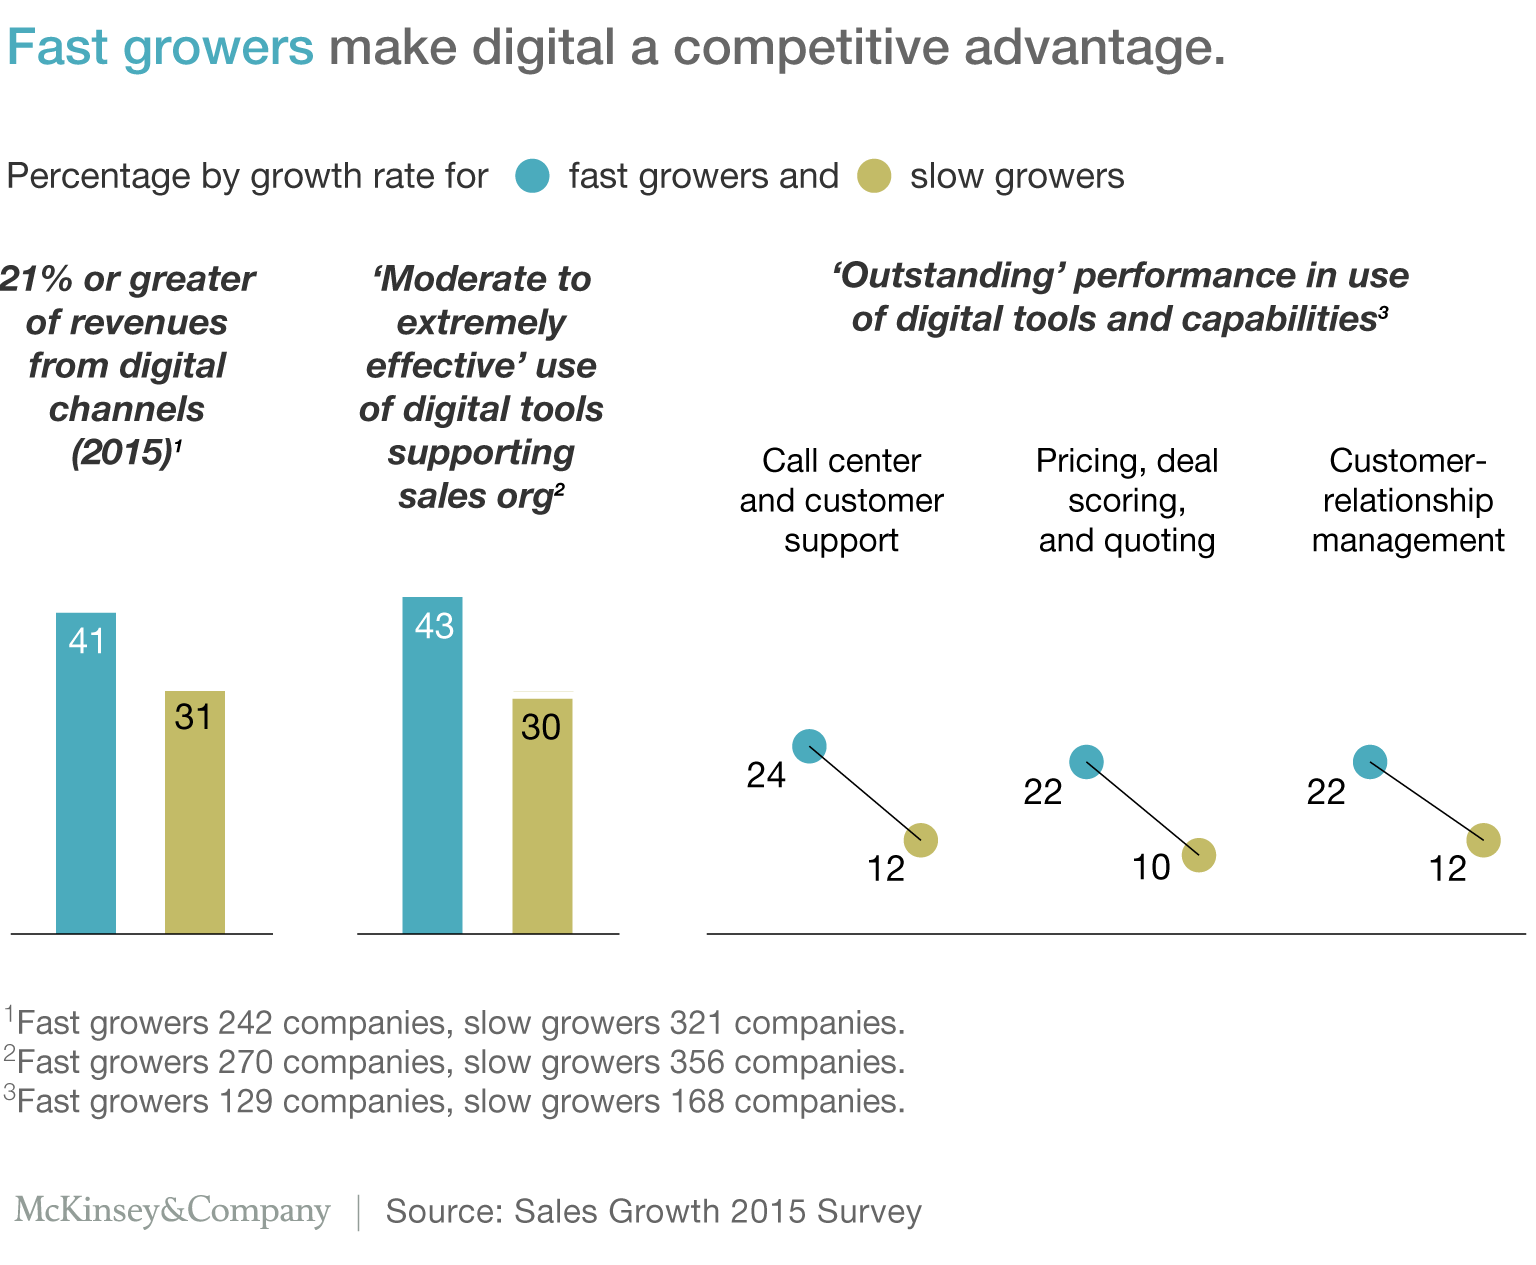 Exhibit 2: Fast growers make digital a competitive advantage